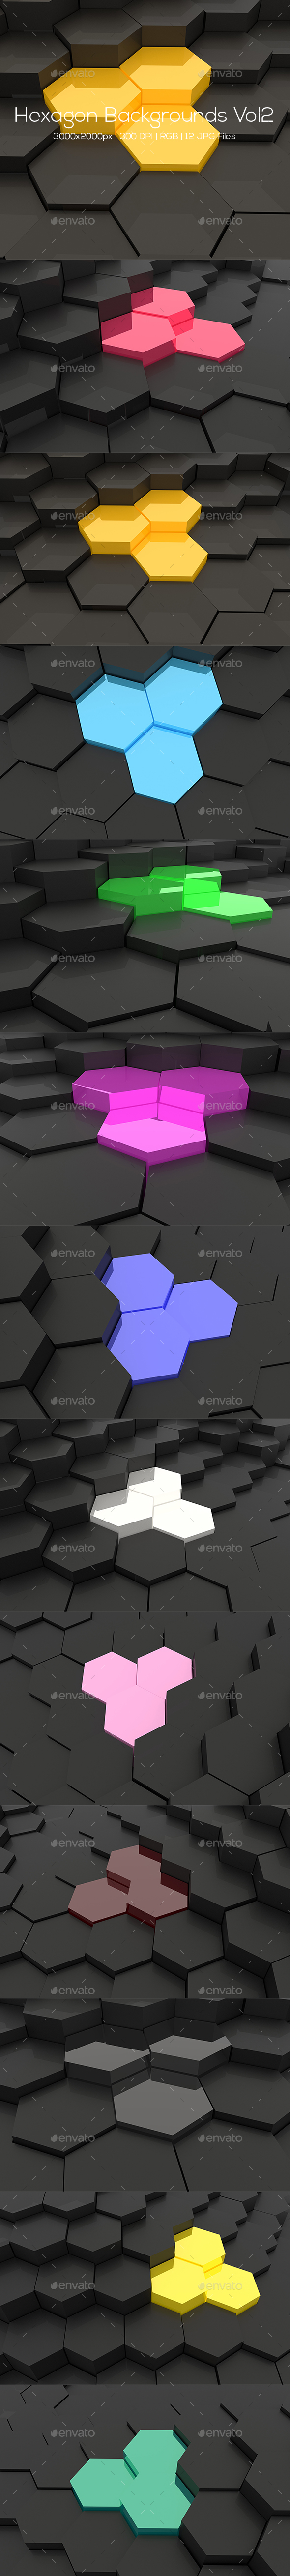 Hexagonal Backgrounds Vol2 - Abstract Backgrounds